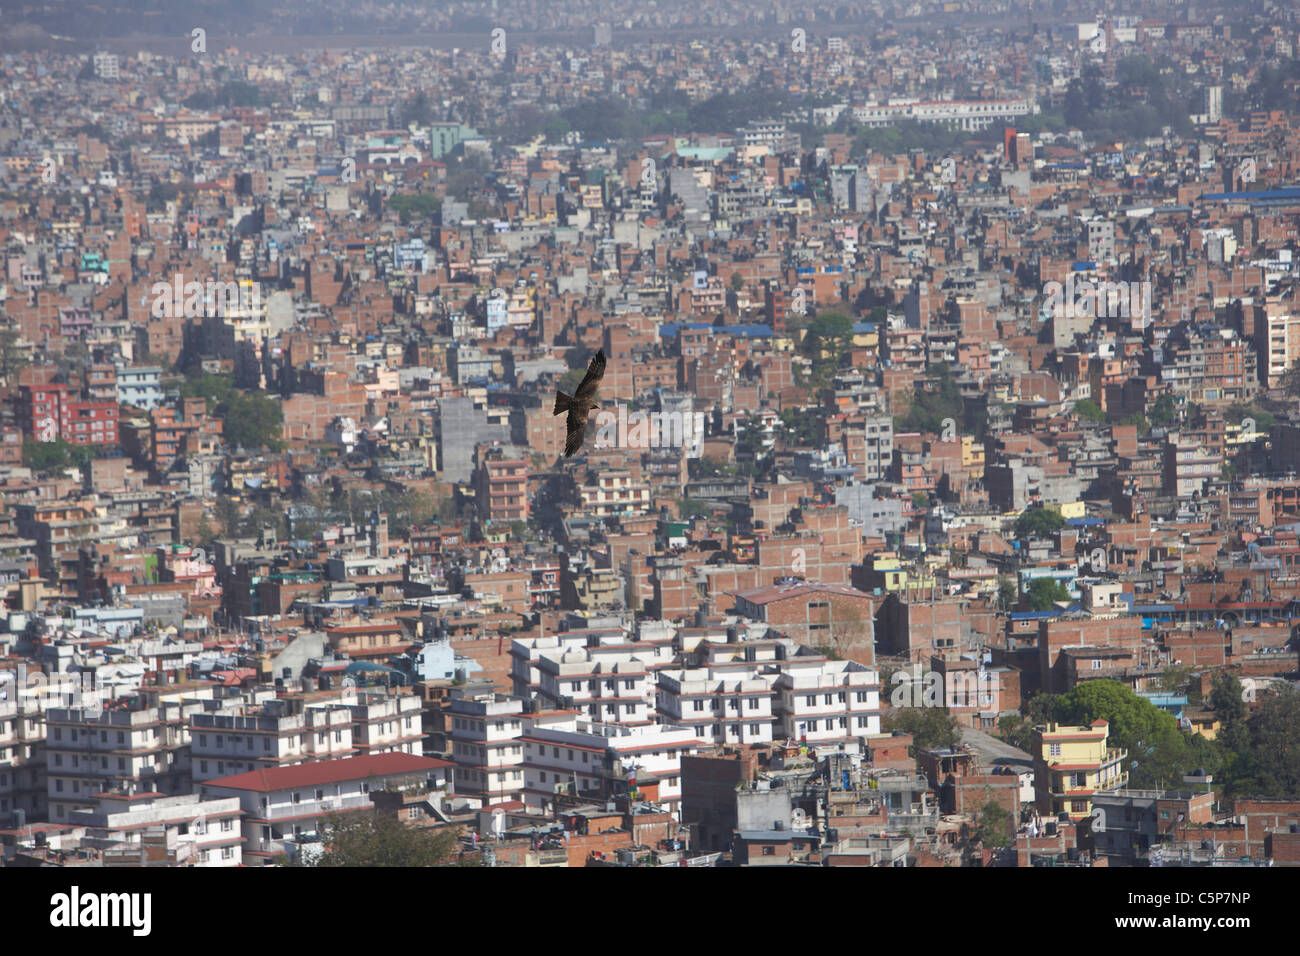 Kite flying over the urban sprawl of Kathmandu, Nepal, Asia - Stock Image